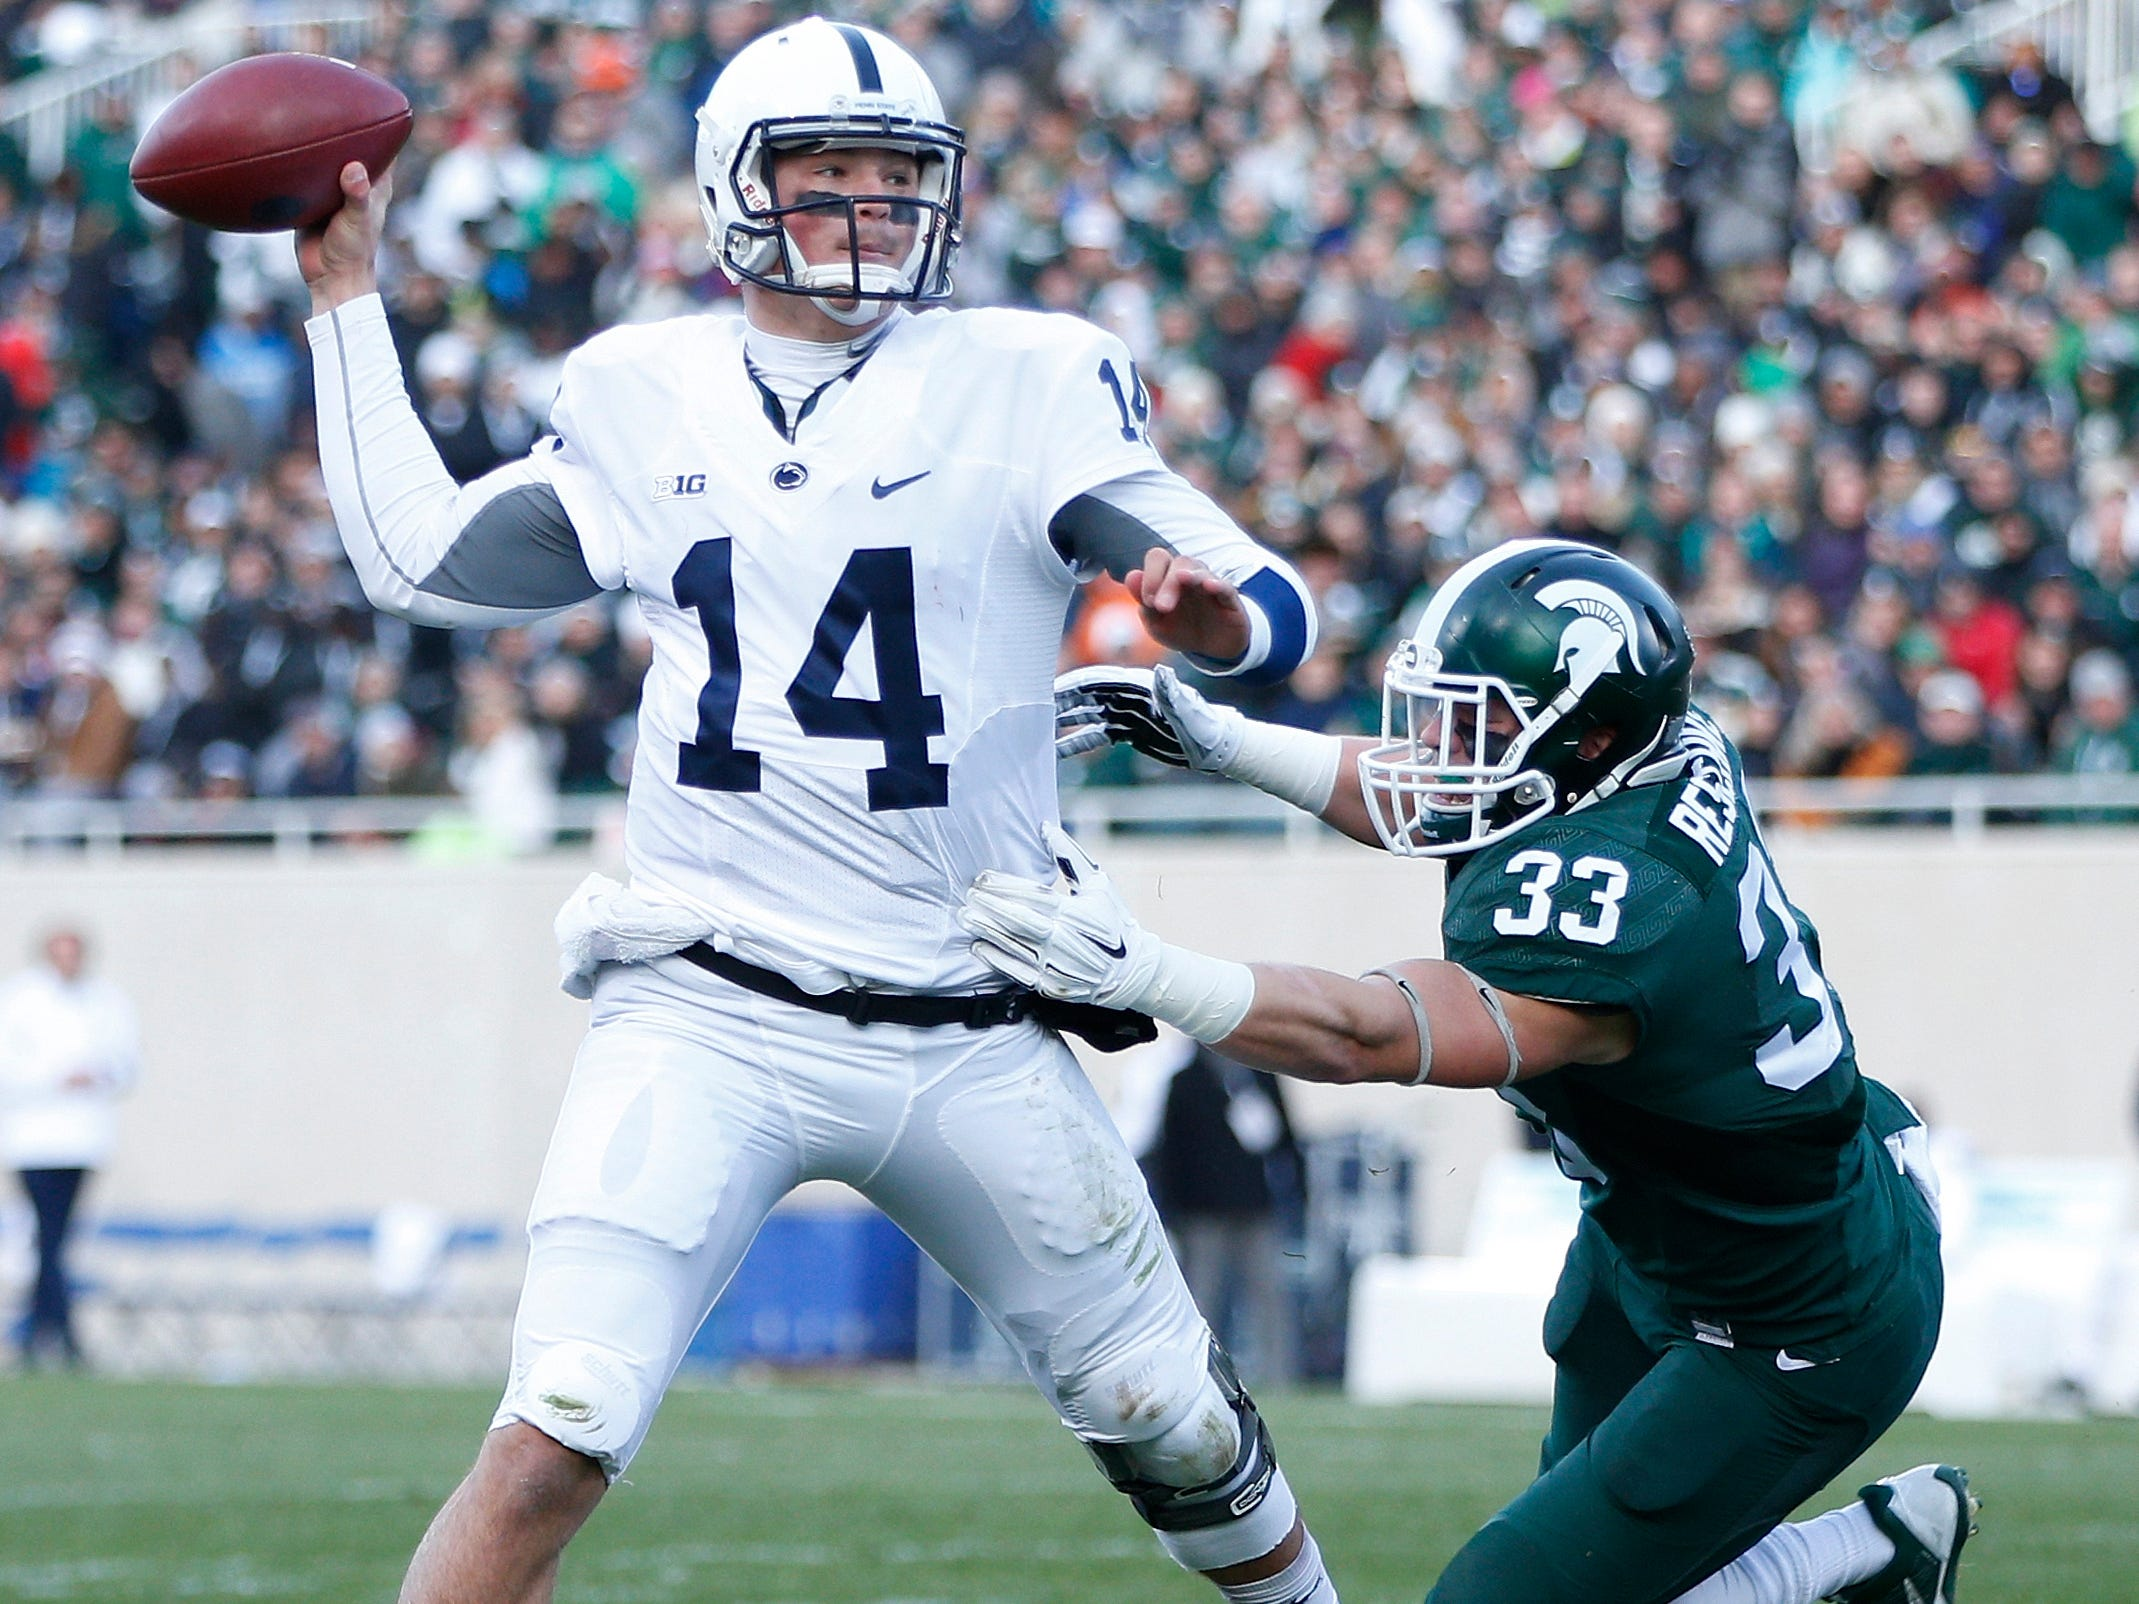 EAST LANSING, MI - NOVEMBER 28: Christian Hackenberg #14 of the Penn State Nittany Lions passes while under pressure from Jon Reschke #33 of the Michigan State Spartans in the first half of the game at Spartan Stadium on November 28, 2015 in East Lansing, Michigan.